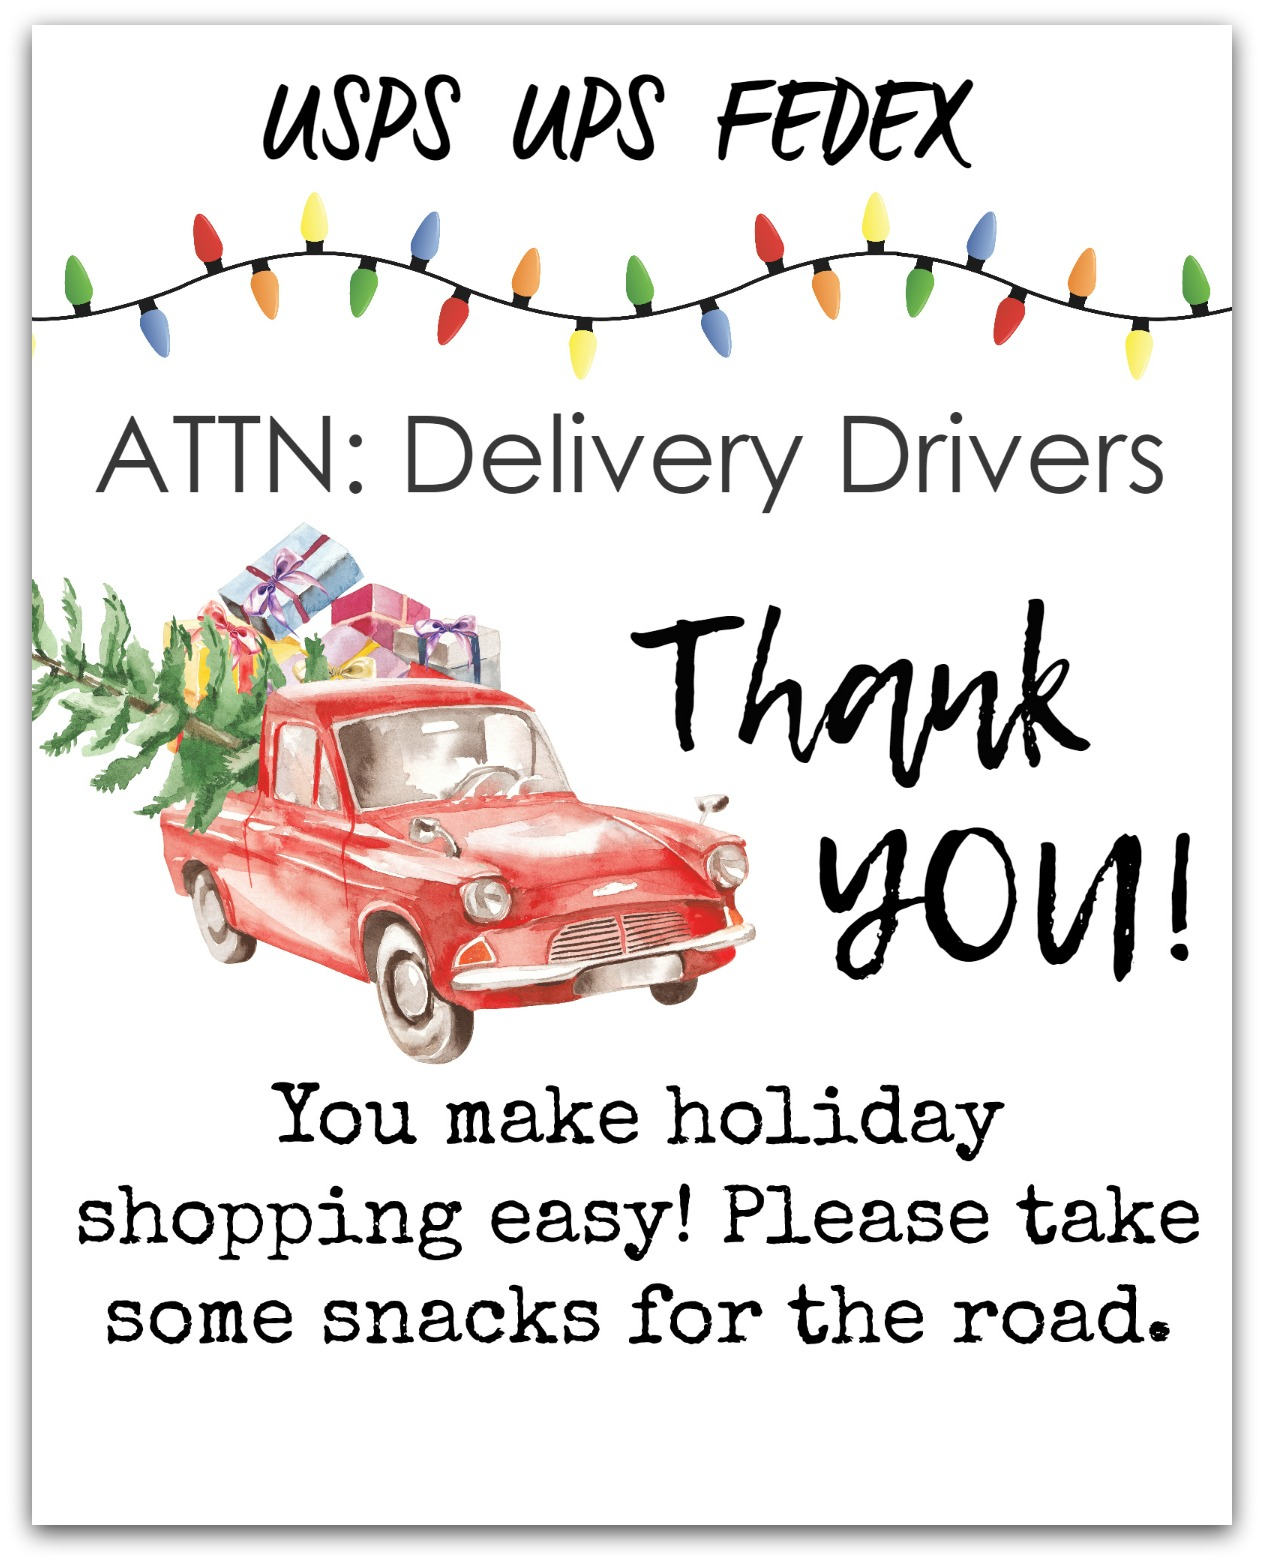 How to Thank Your Delivery Person During the Holidays